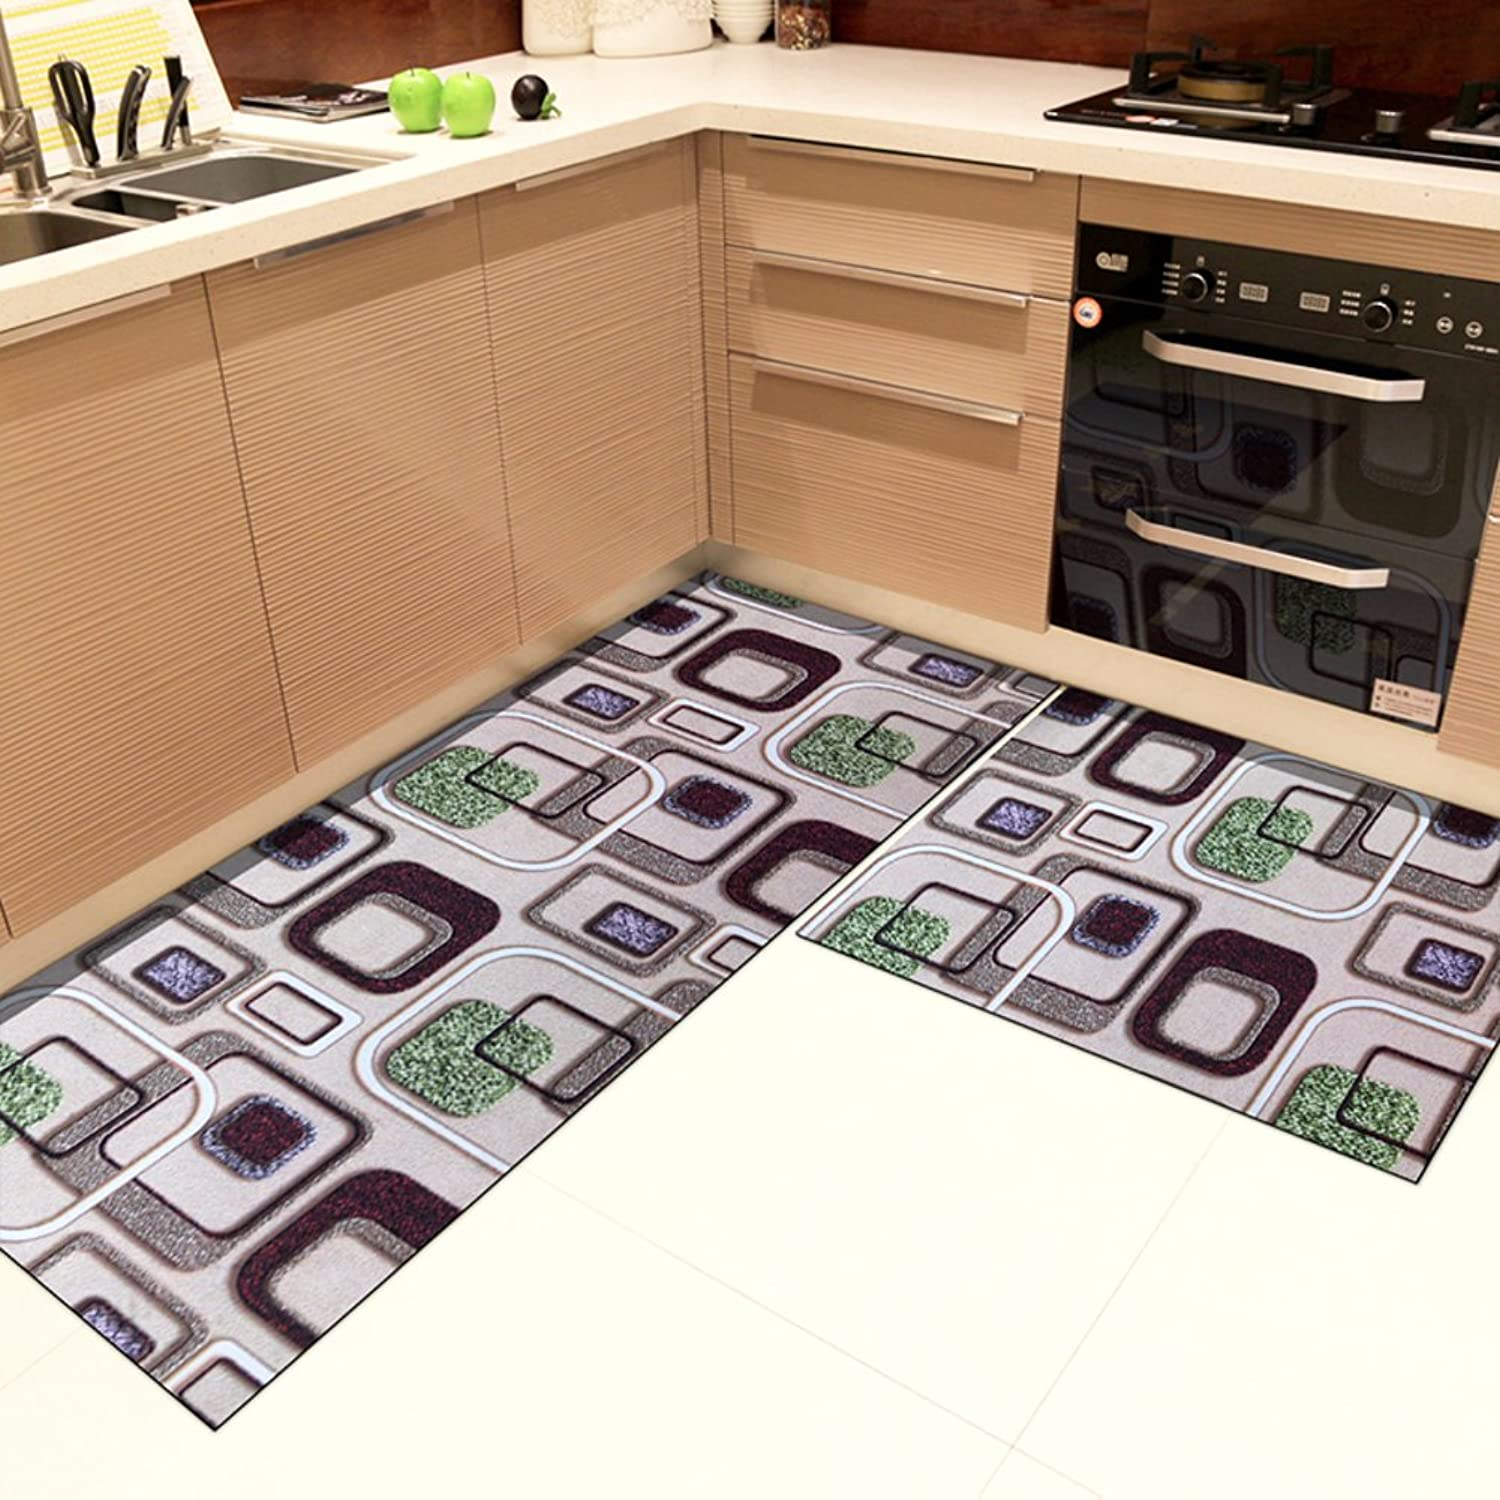 Carpet Door mats Foot pad Kitchen Oil-Proof Water Absorption Non-Slip Bedroom Bathroom-A 18x24inch+18x71inch